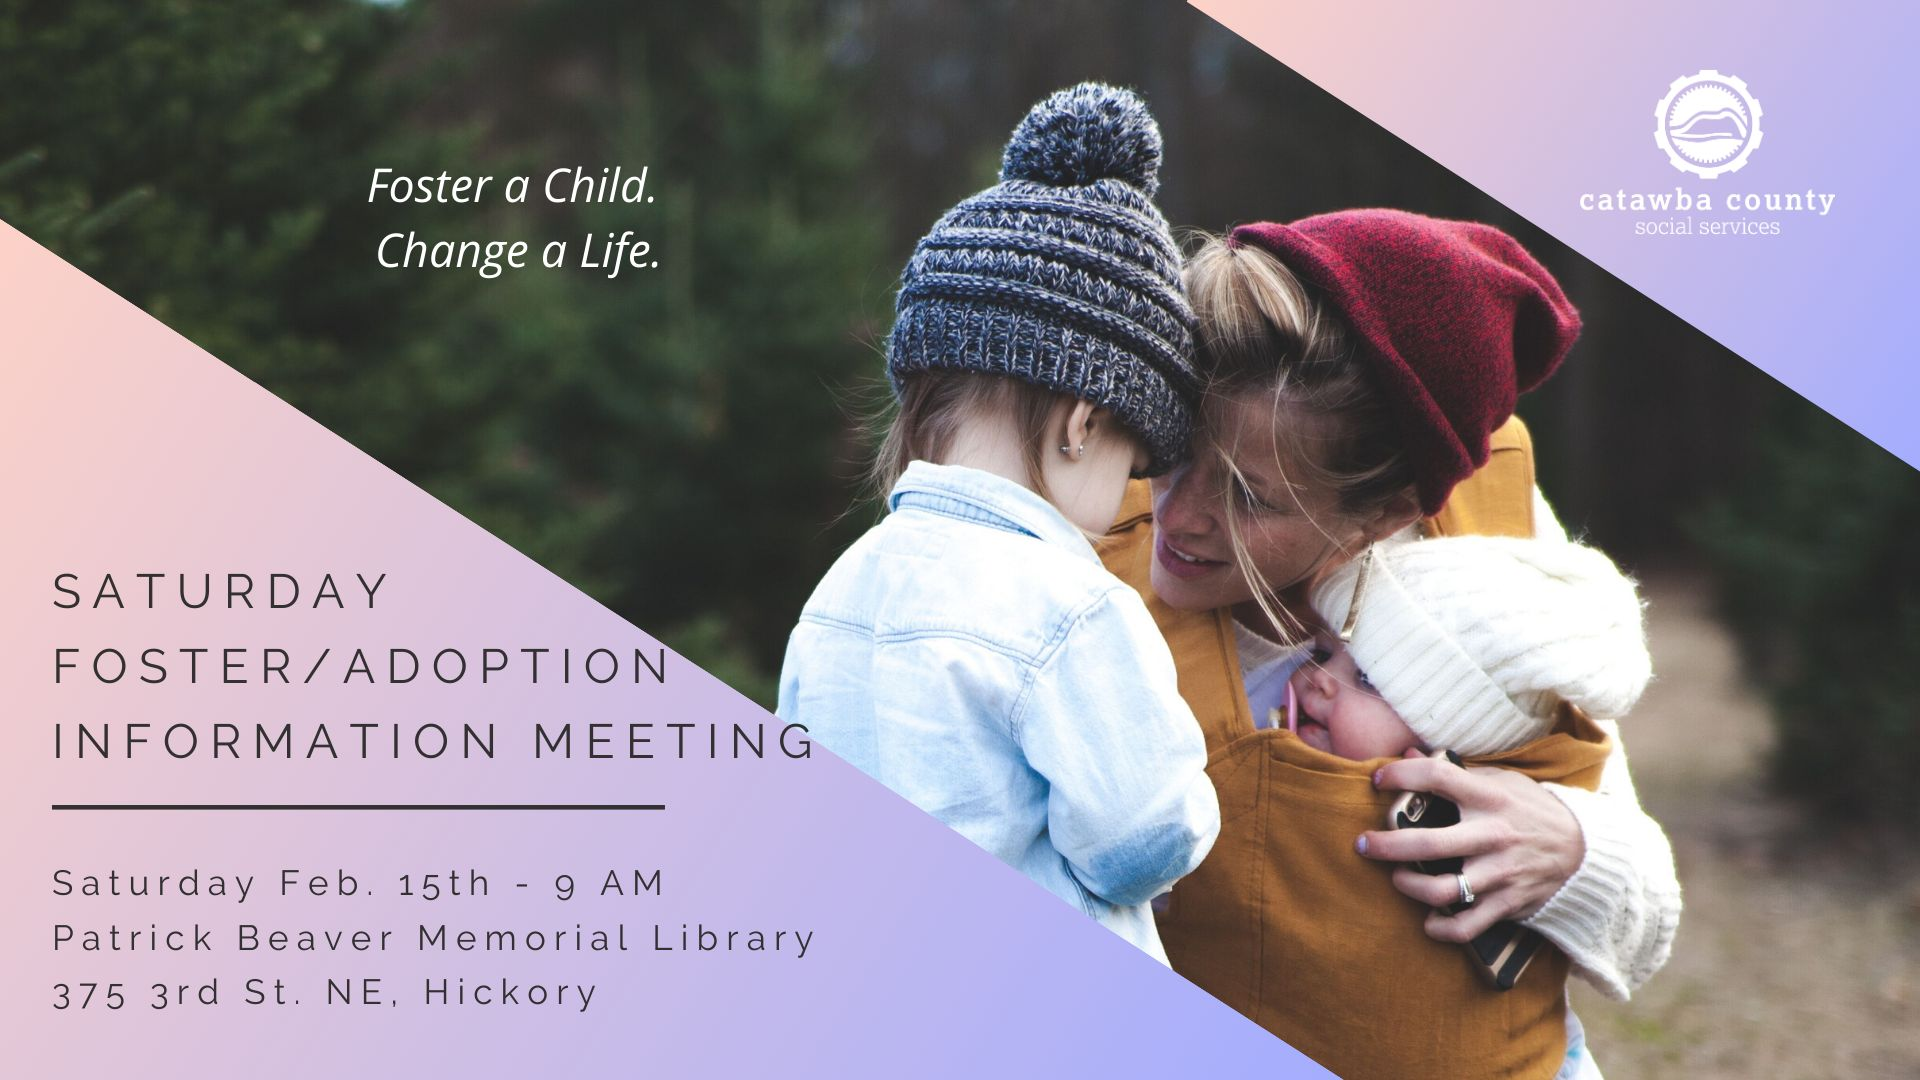 Saturday Foster/Adoption Information Meeting 2-15-20